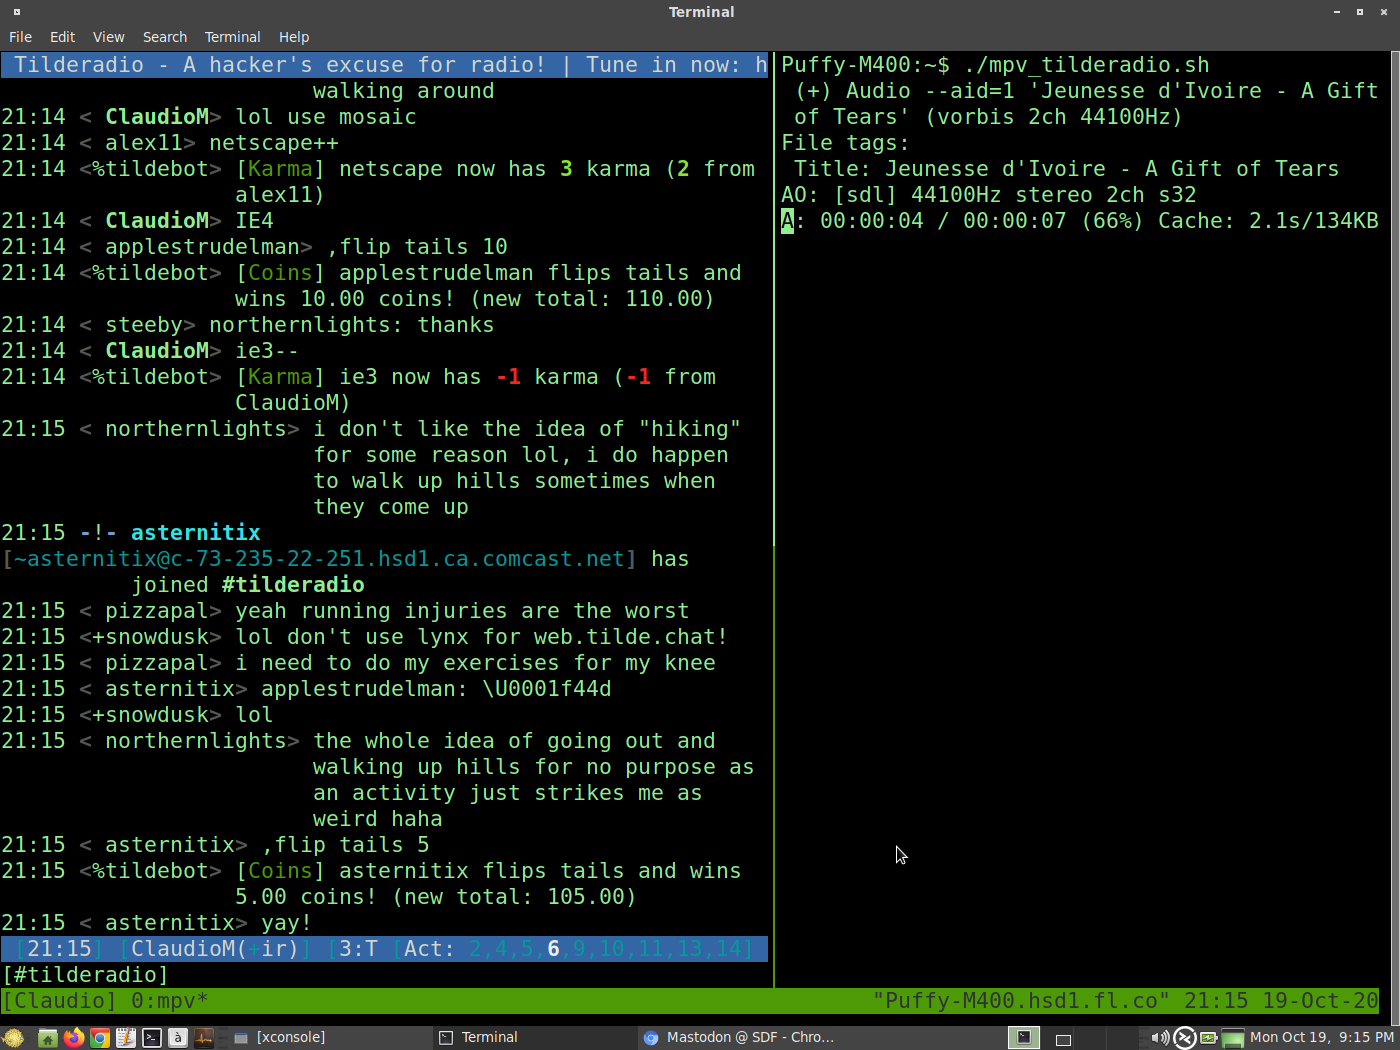 MATE Desktop on OpenBSD 6.8-current with MATE Terminal running maximized with large fonts (because I'm old). Tmux is running with two column panes. Left pane is running Irssi and on the Tilderadio IRC channel. Right pane is playing IGWH on Tilderadio via MPV.